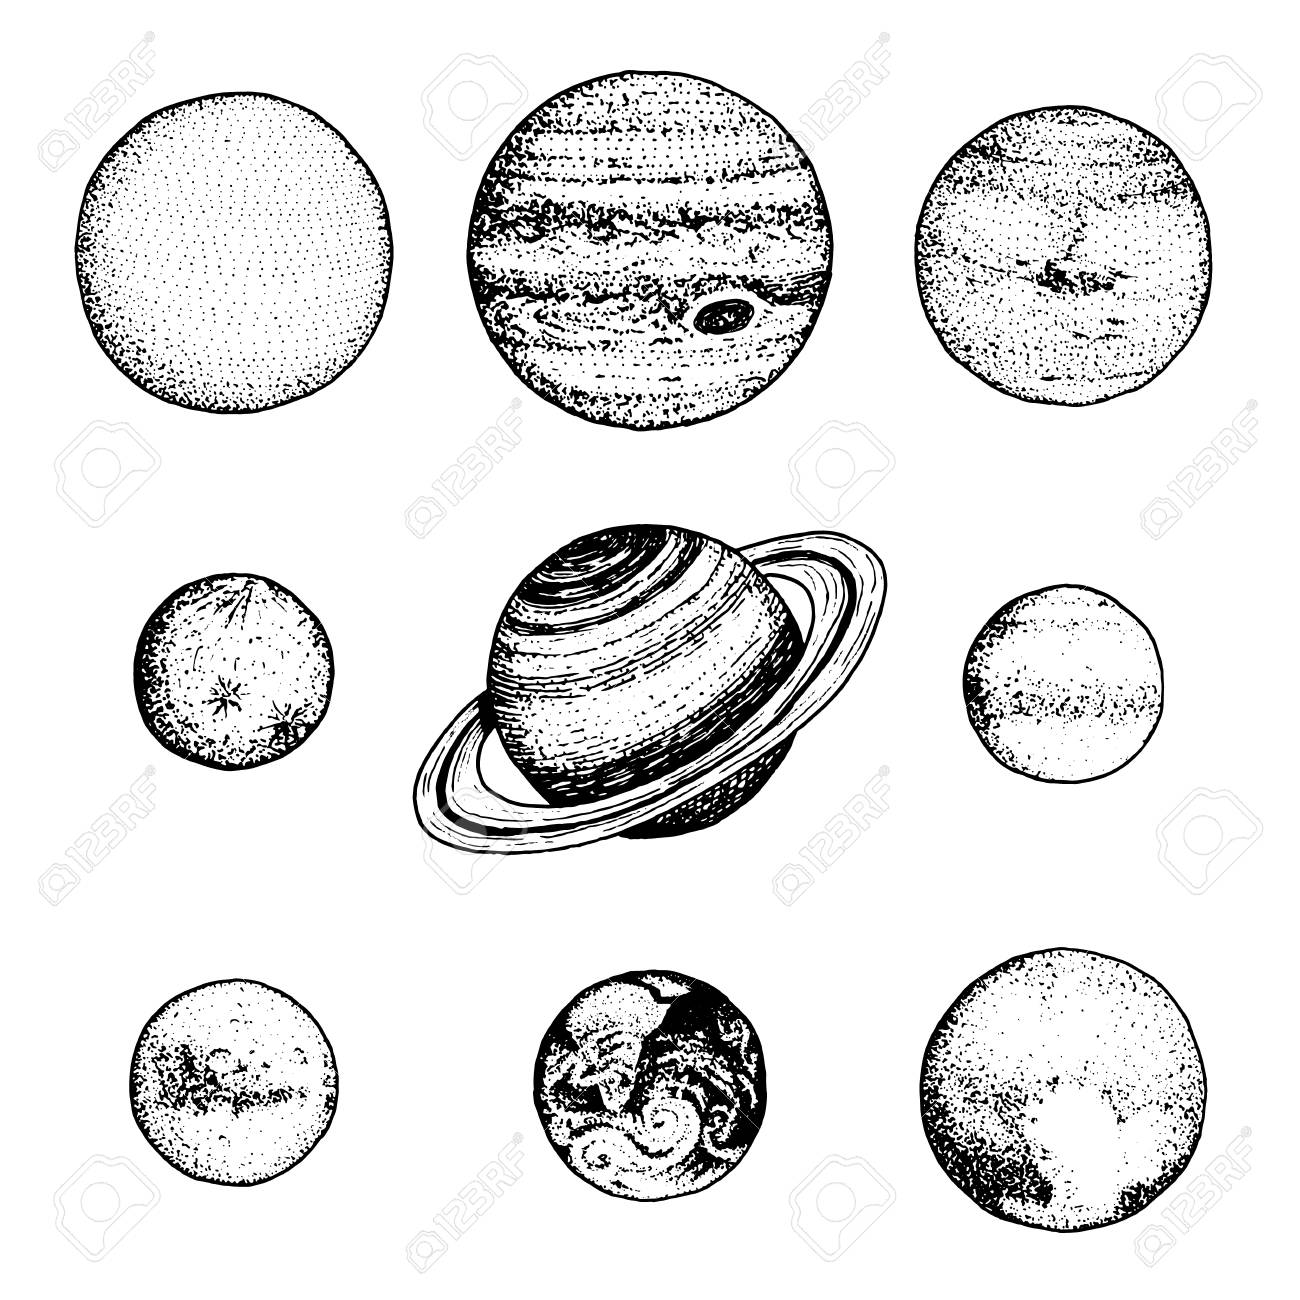 how to draw planets in our solar system